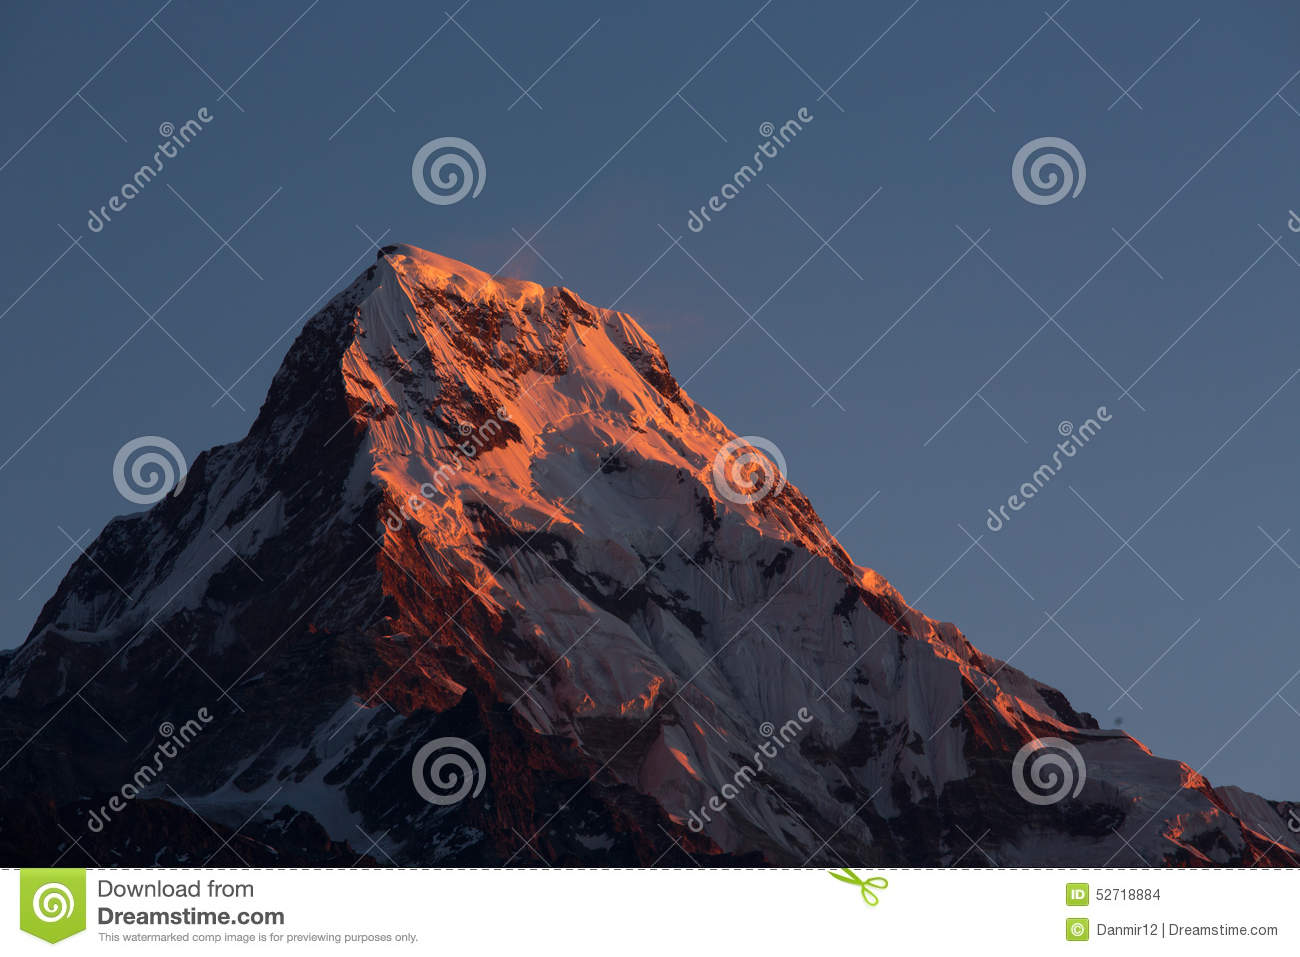 Annapurna I Himalaya Mountains View from Poon Hill 3210m at sunr